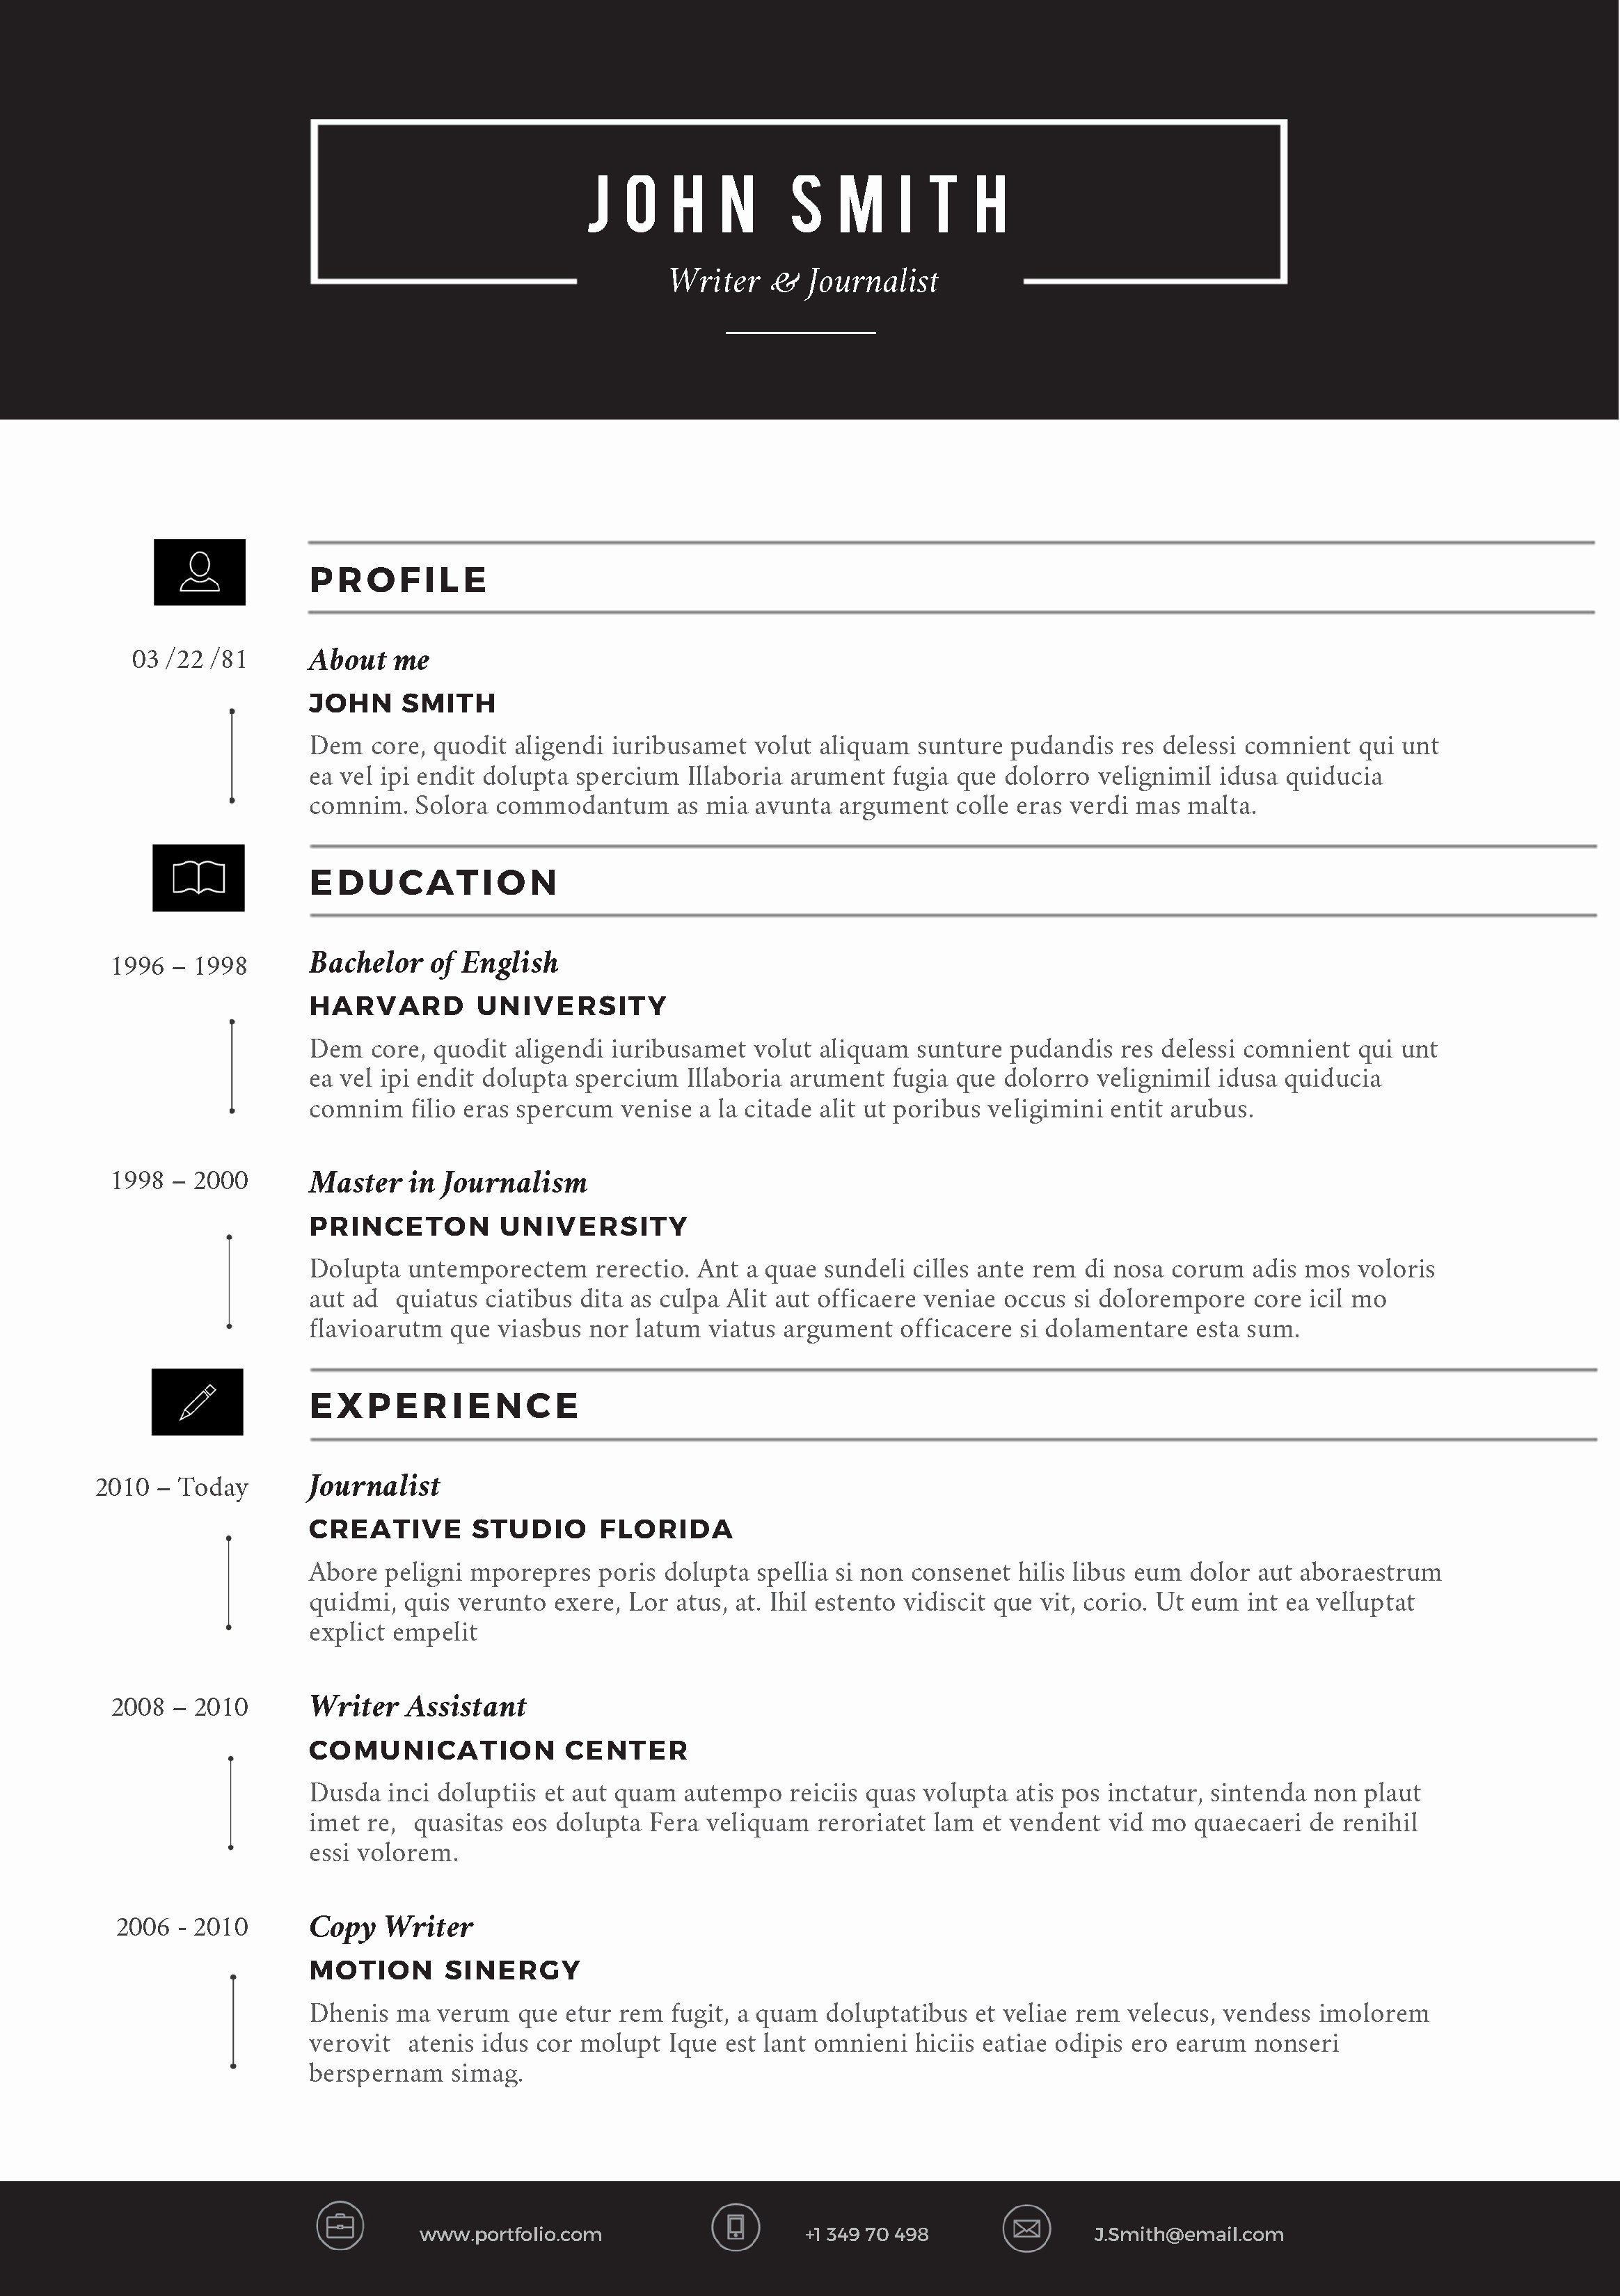 Free Download Templates for Word Inspirational Fice Resume Template Cover Letter Portfolio